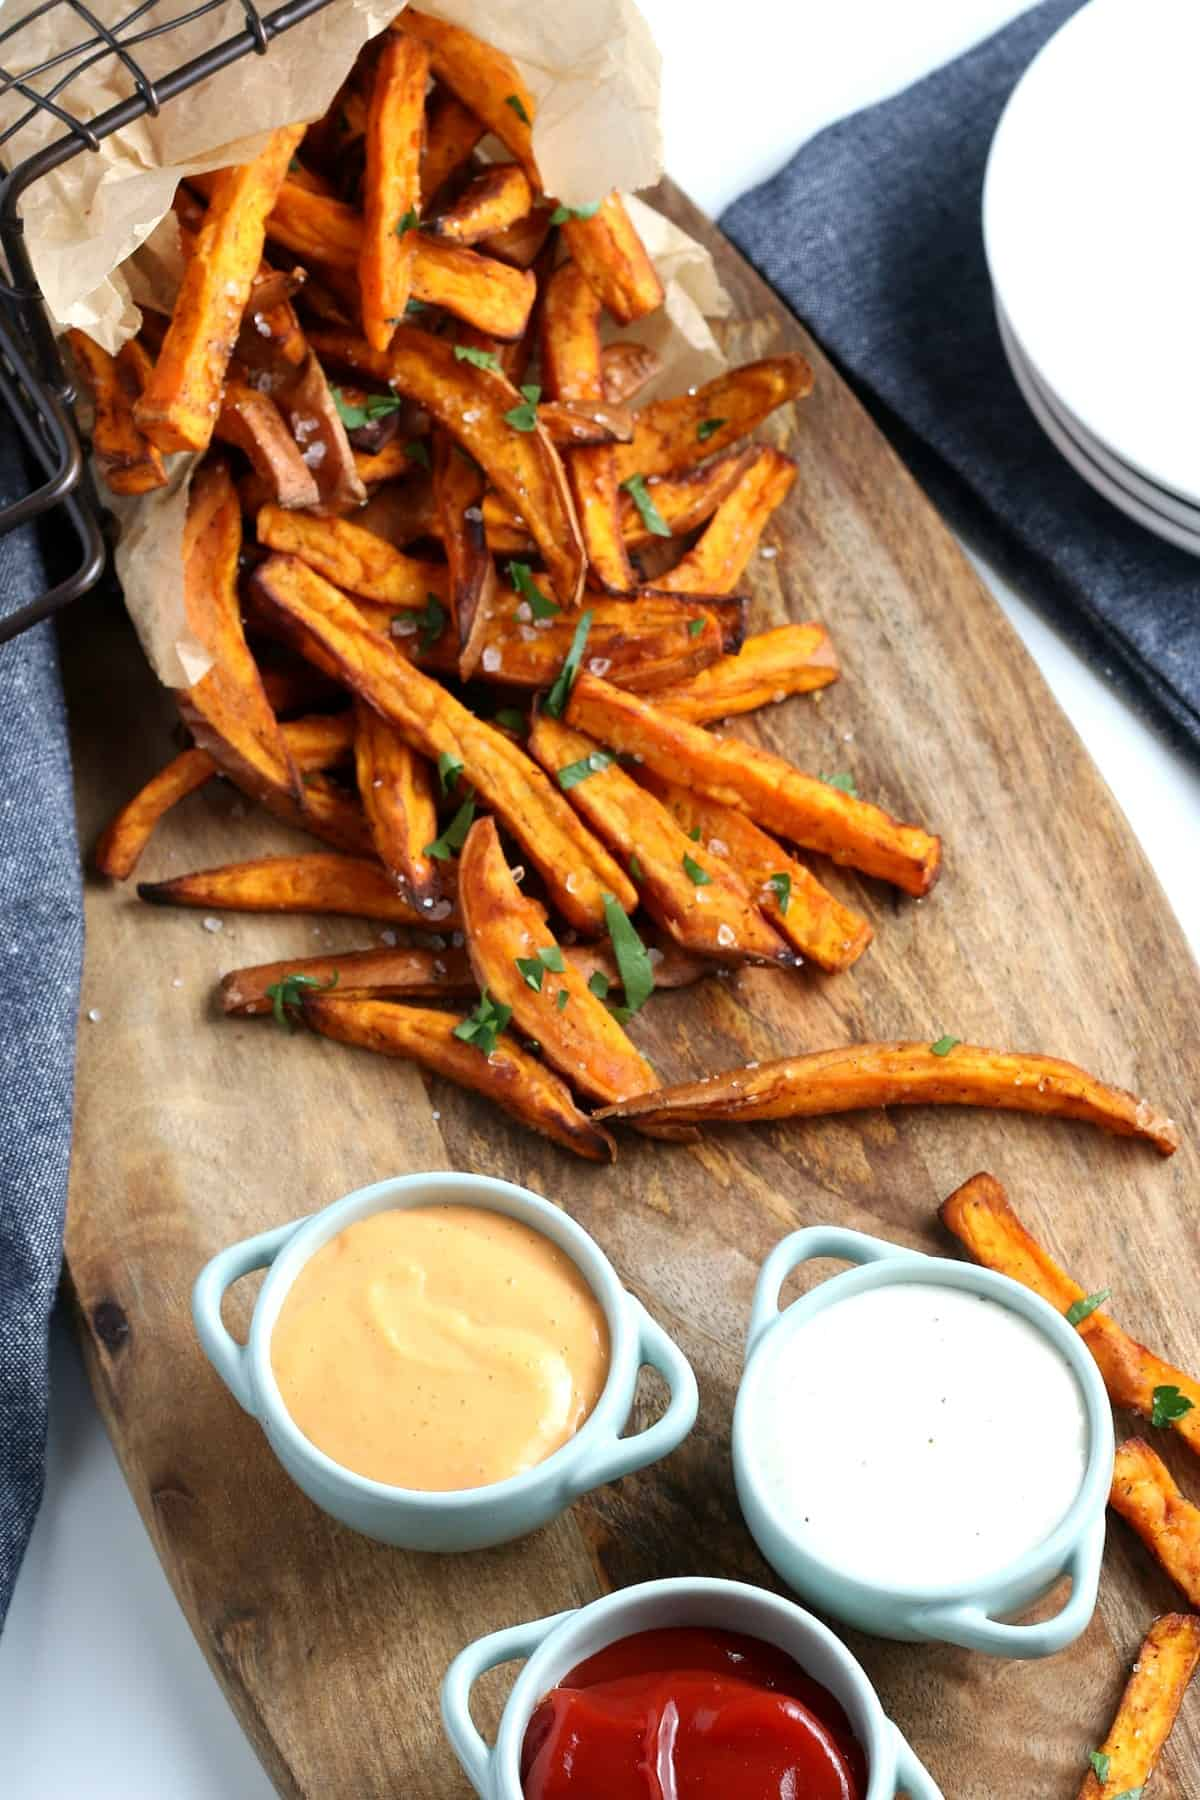 Overhead view of sweet potato fries and three dipping sauces.